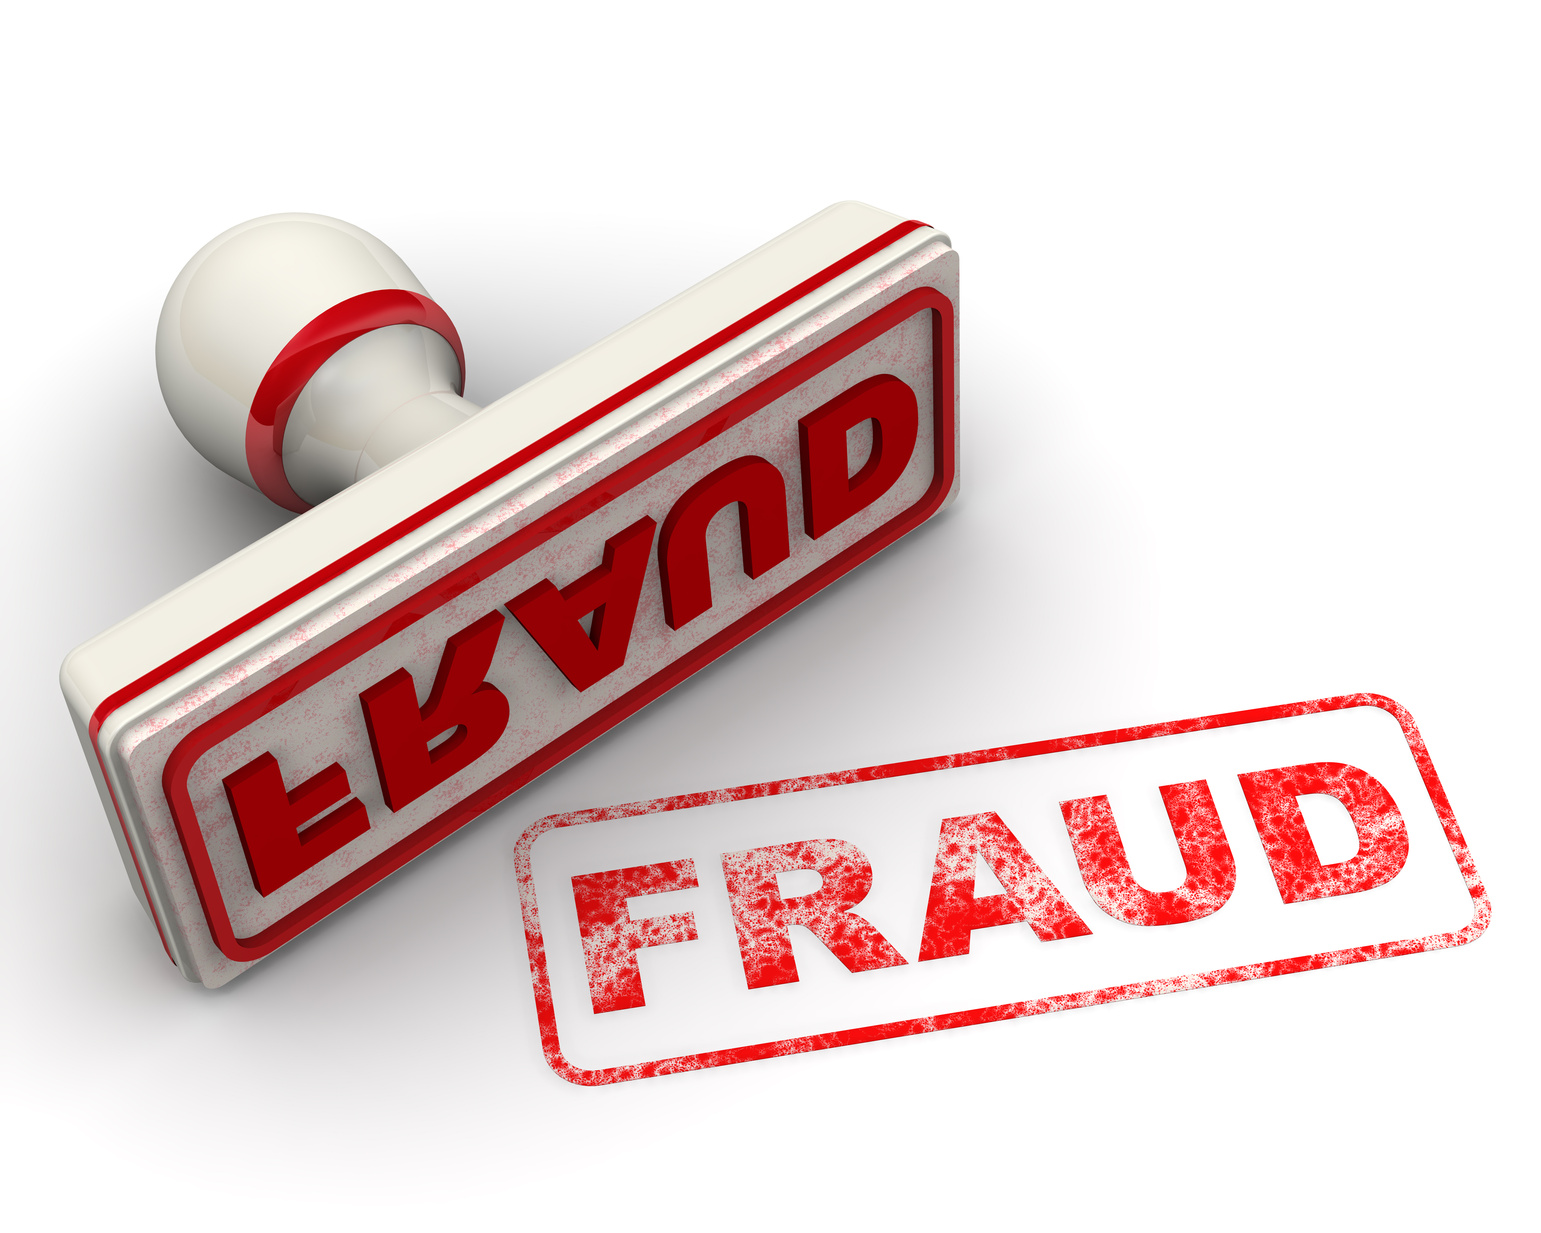 FSB and Alexander Forbes warn against fraudulent activity